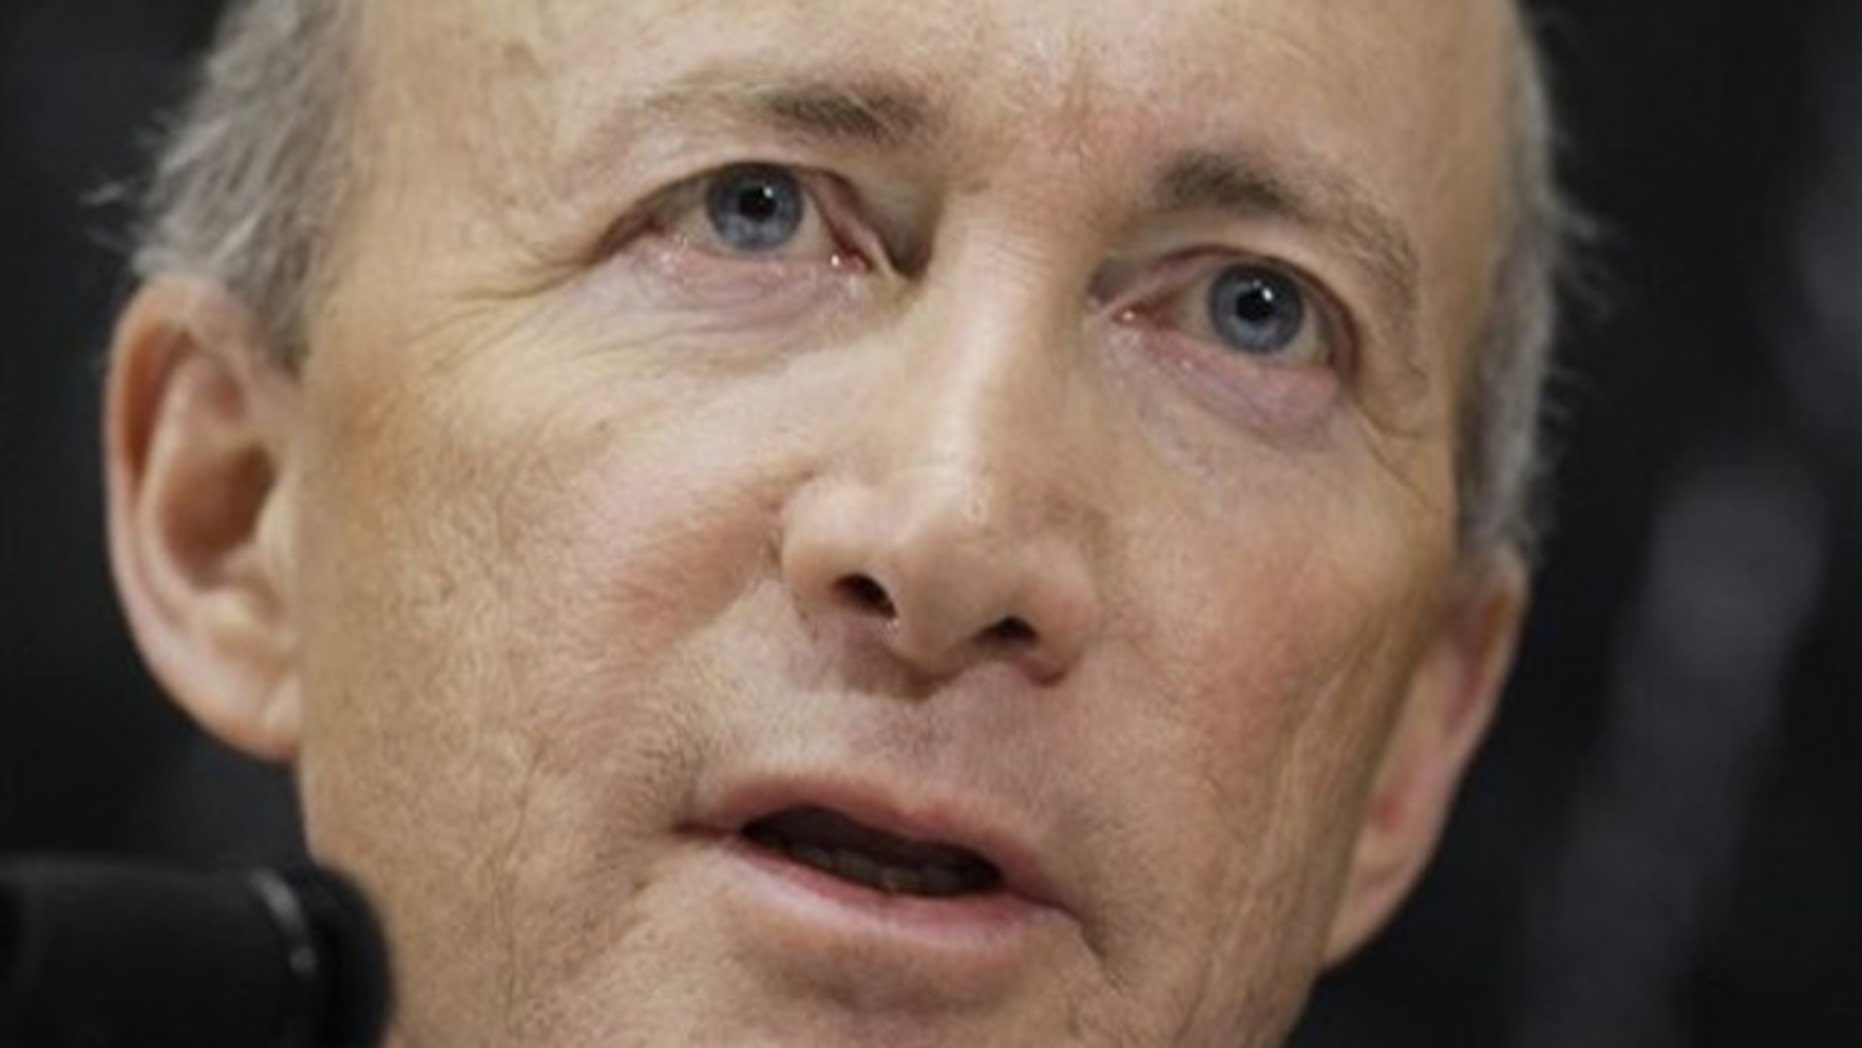 In this Jan. 19 photo, Indiana Gov. Mitch Daniels is shown in Indianapolis. (AP Photo)